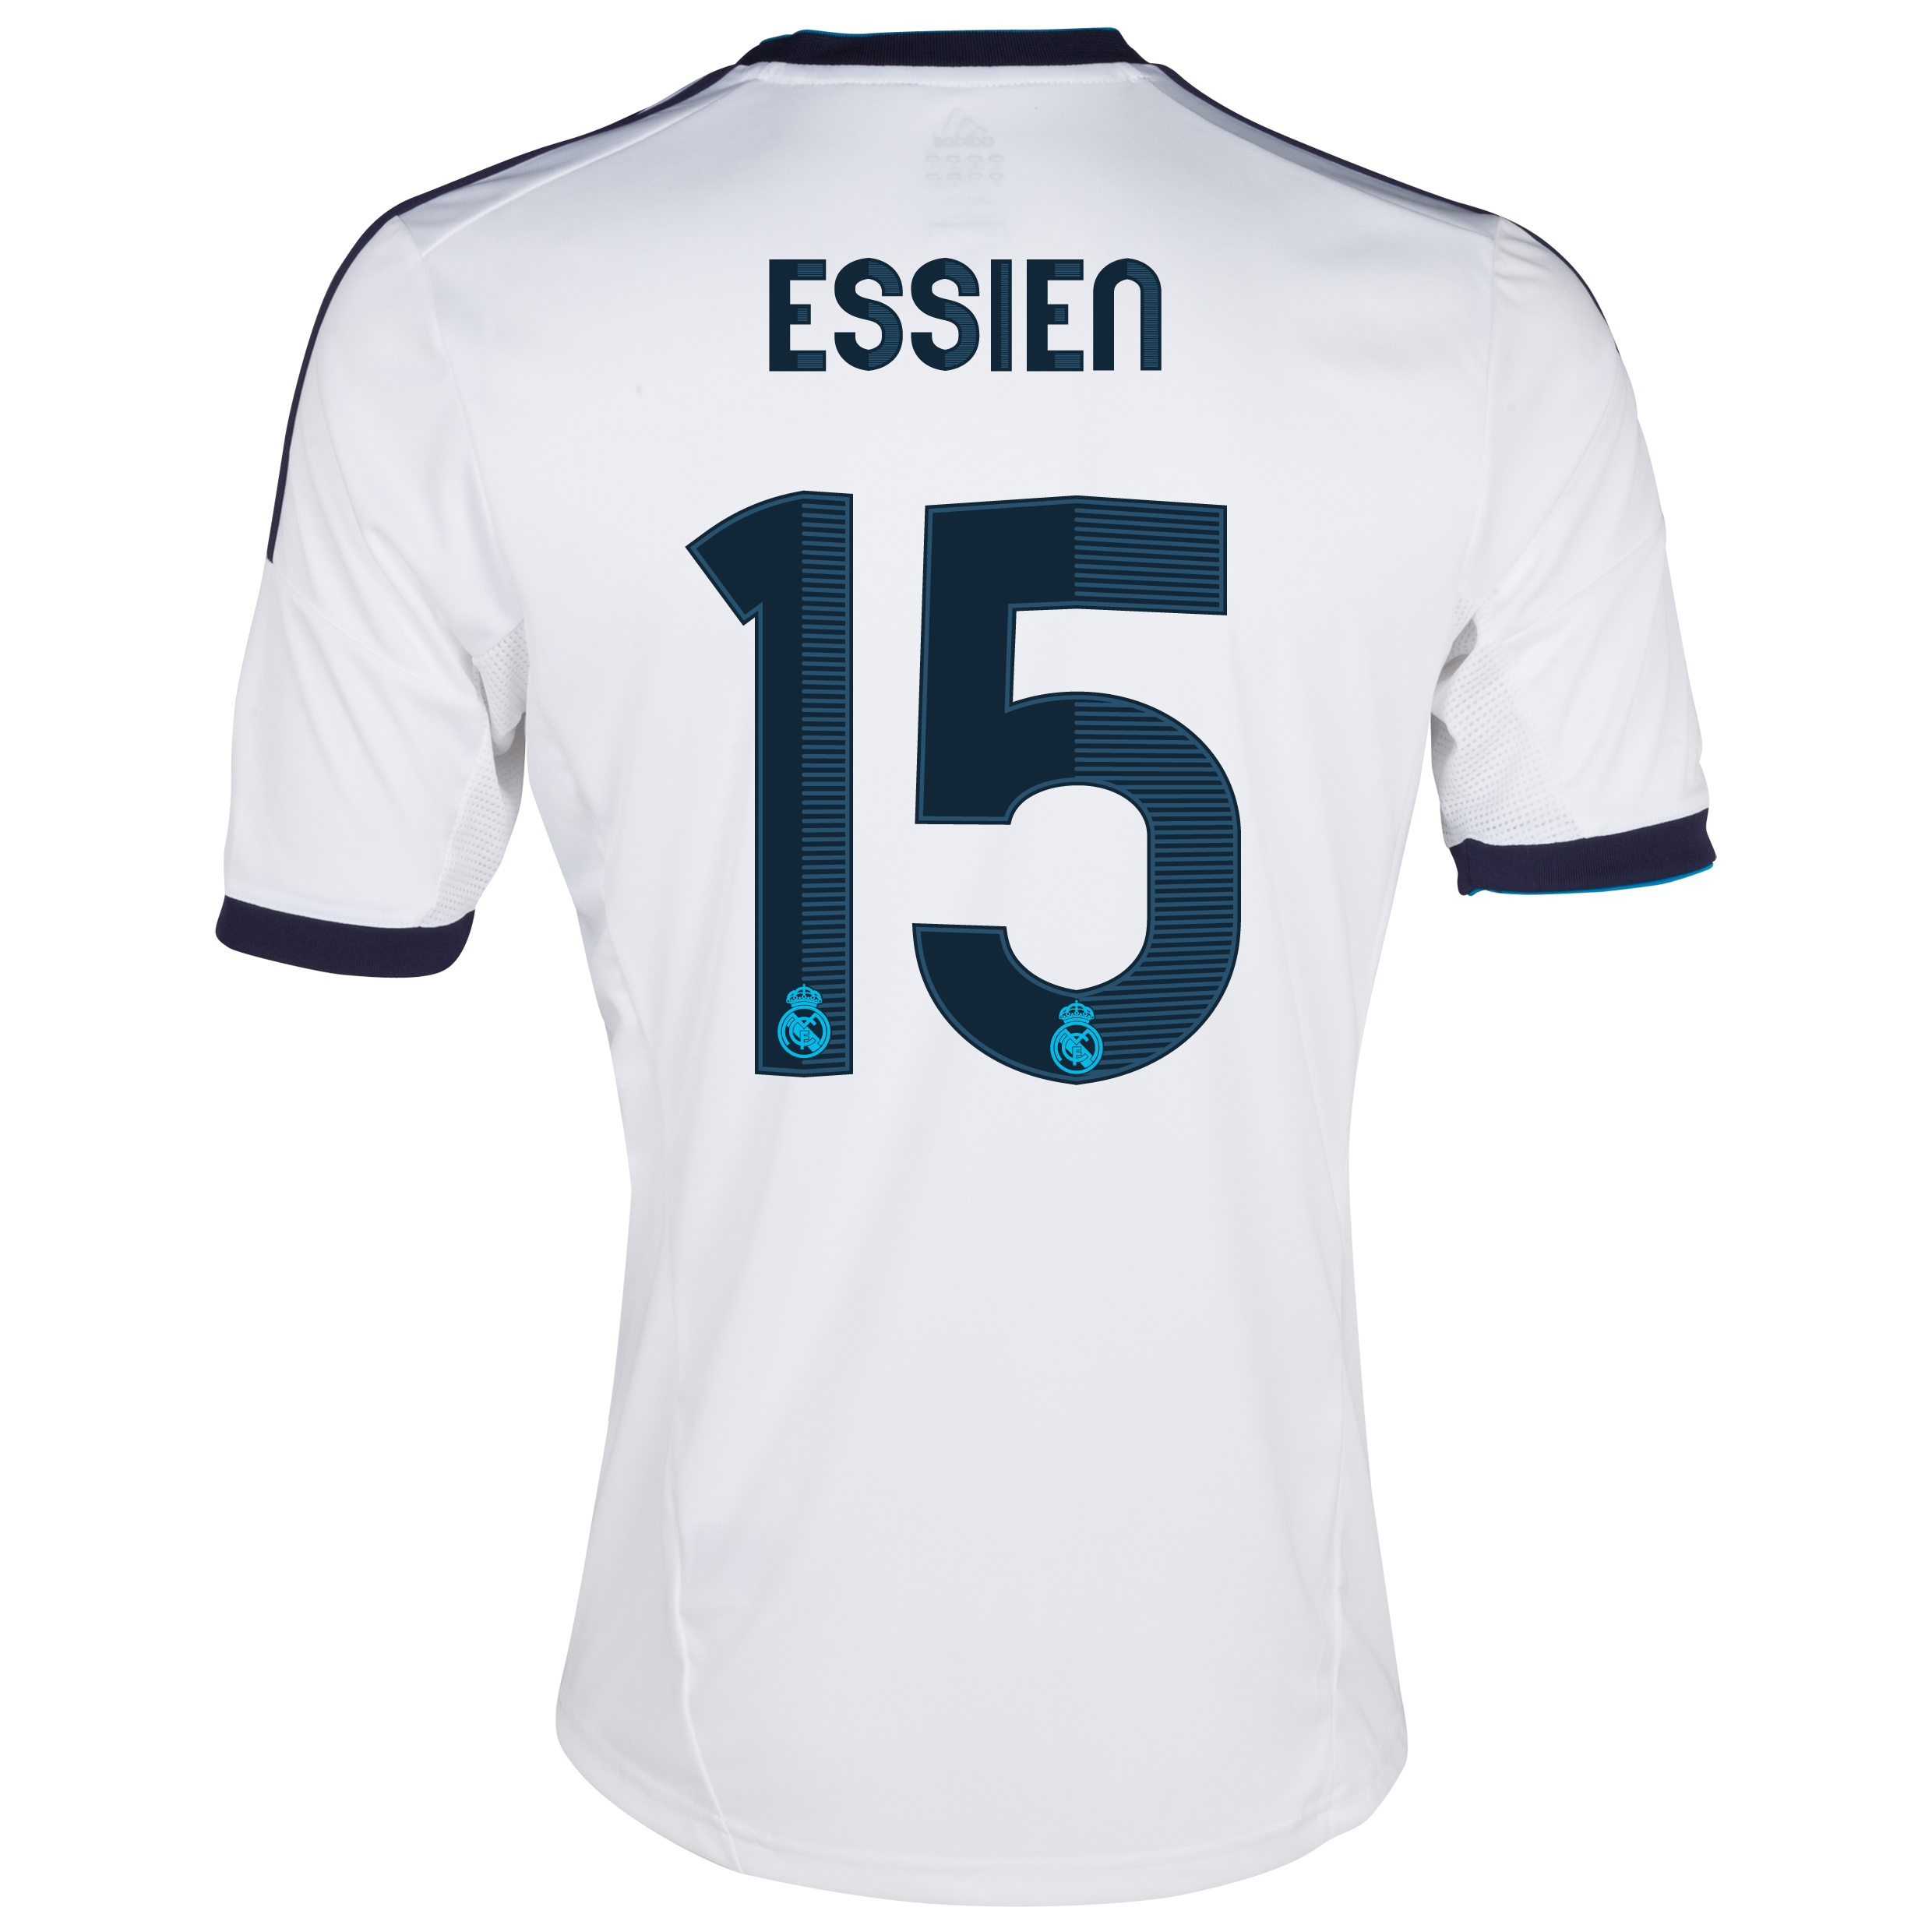 Real Madrid Home Shirt 2012/13 with Essien 15 printing